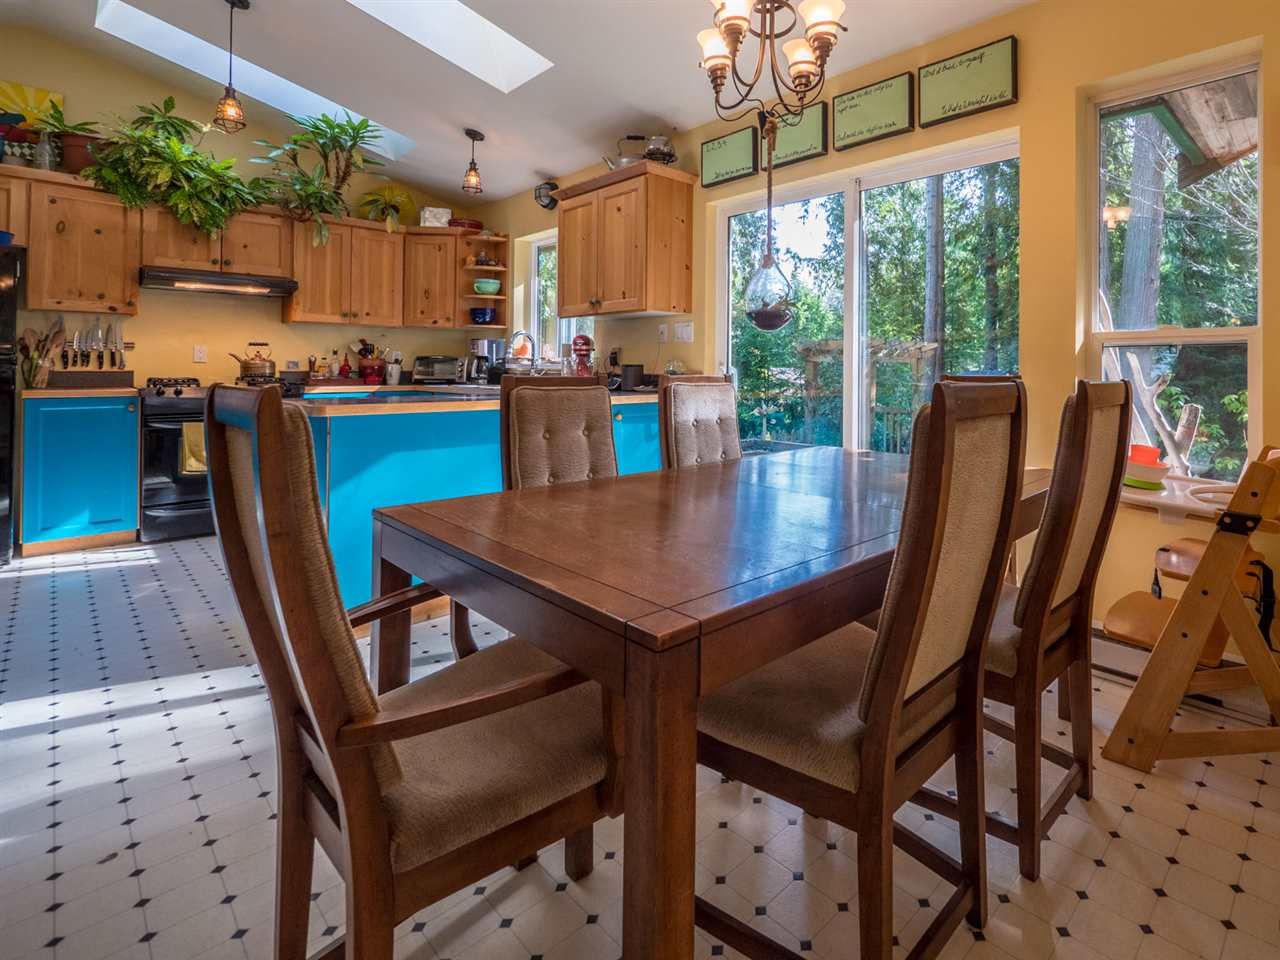 Photo 5: Photos: 1421 MARGARET Road: Roberts Creek House for sale (Sunshine Coast)  : MLS® # R2243186